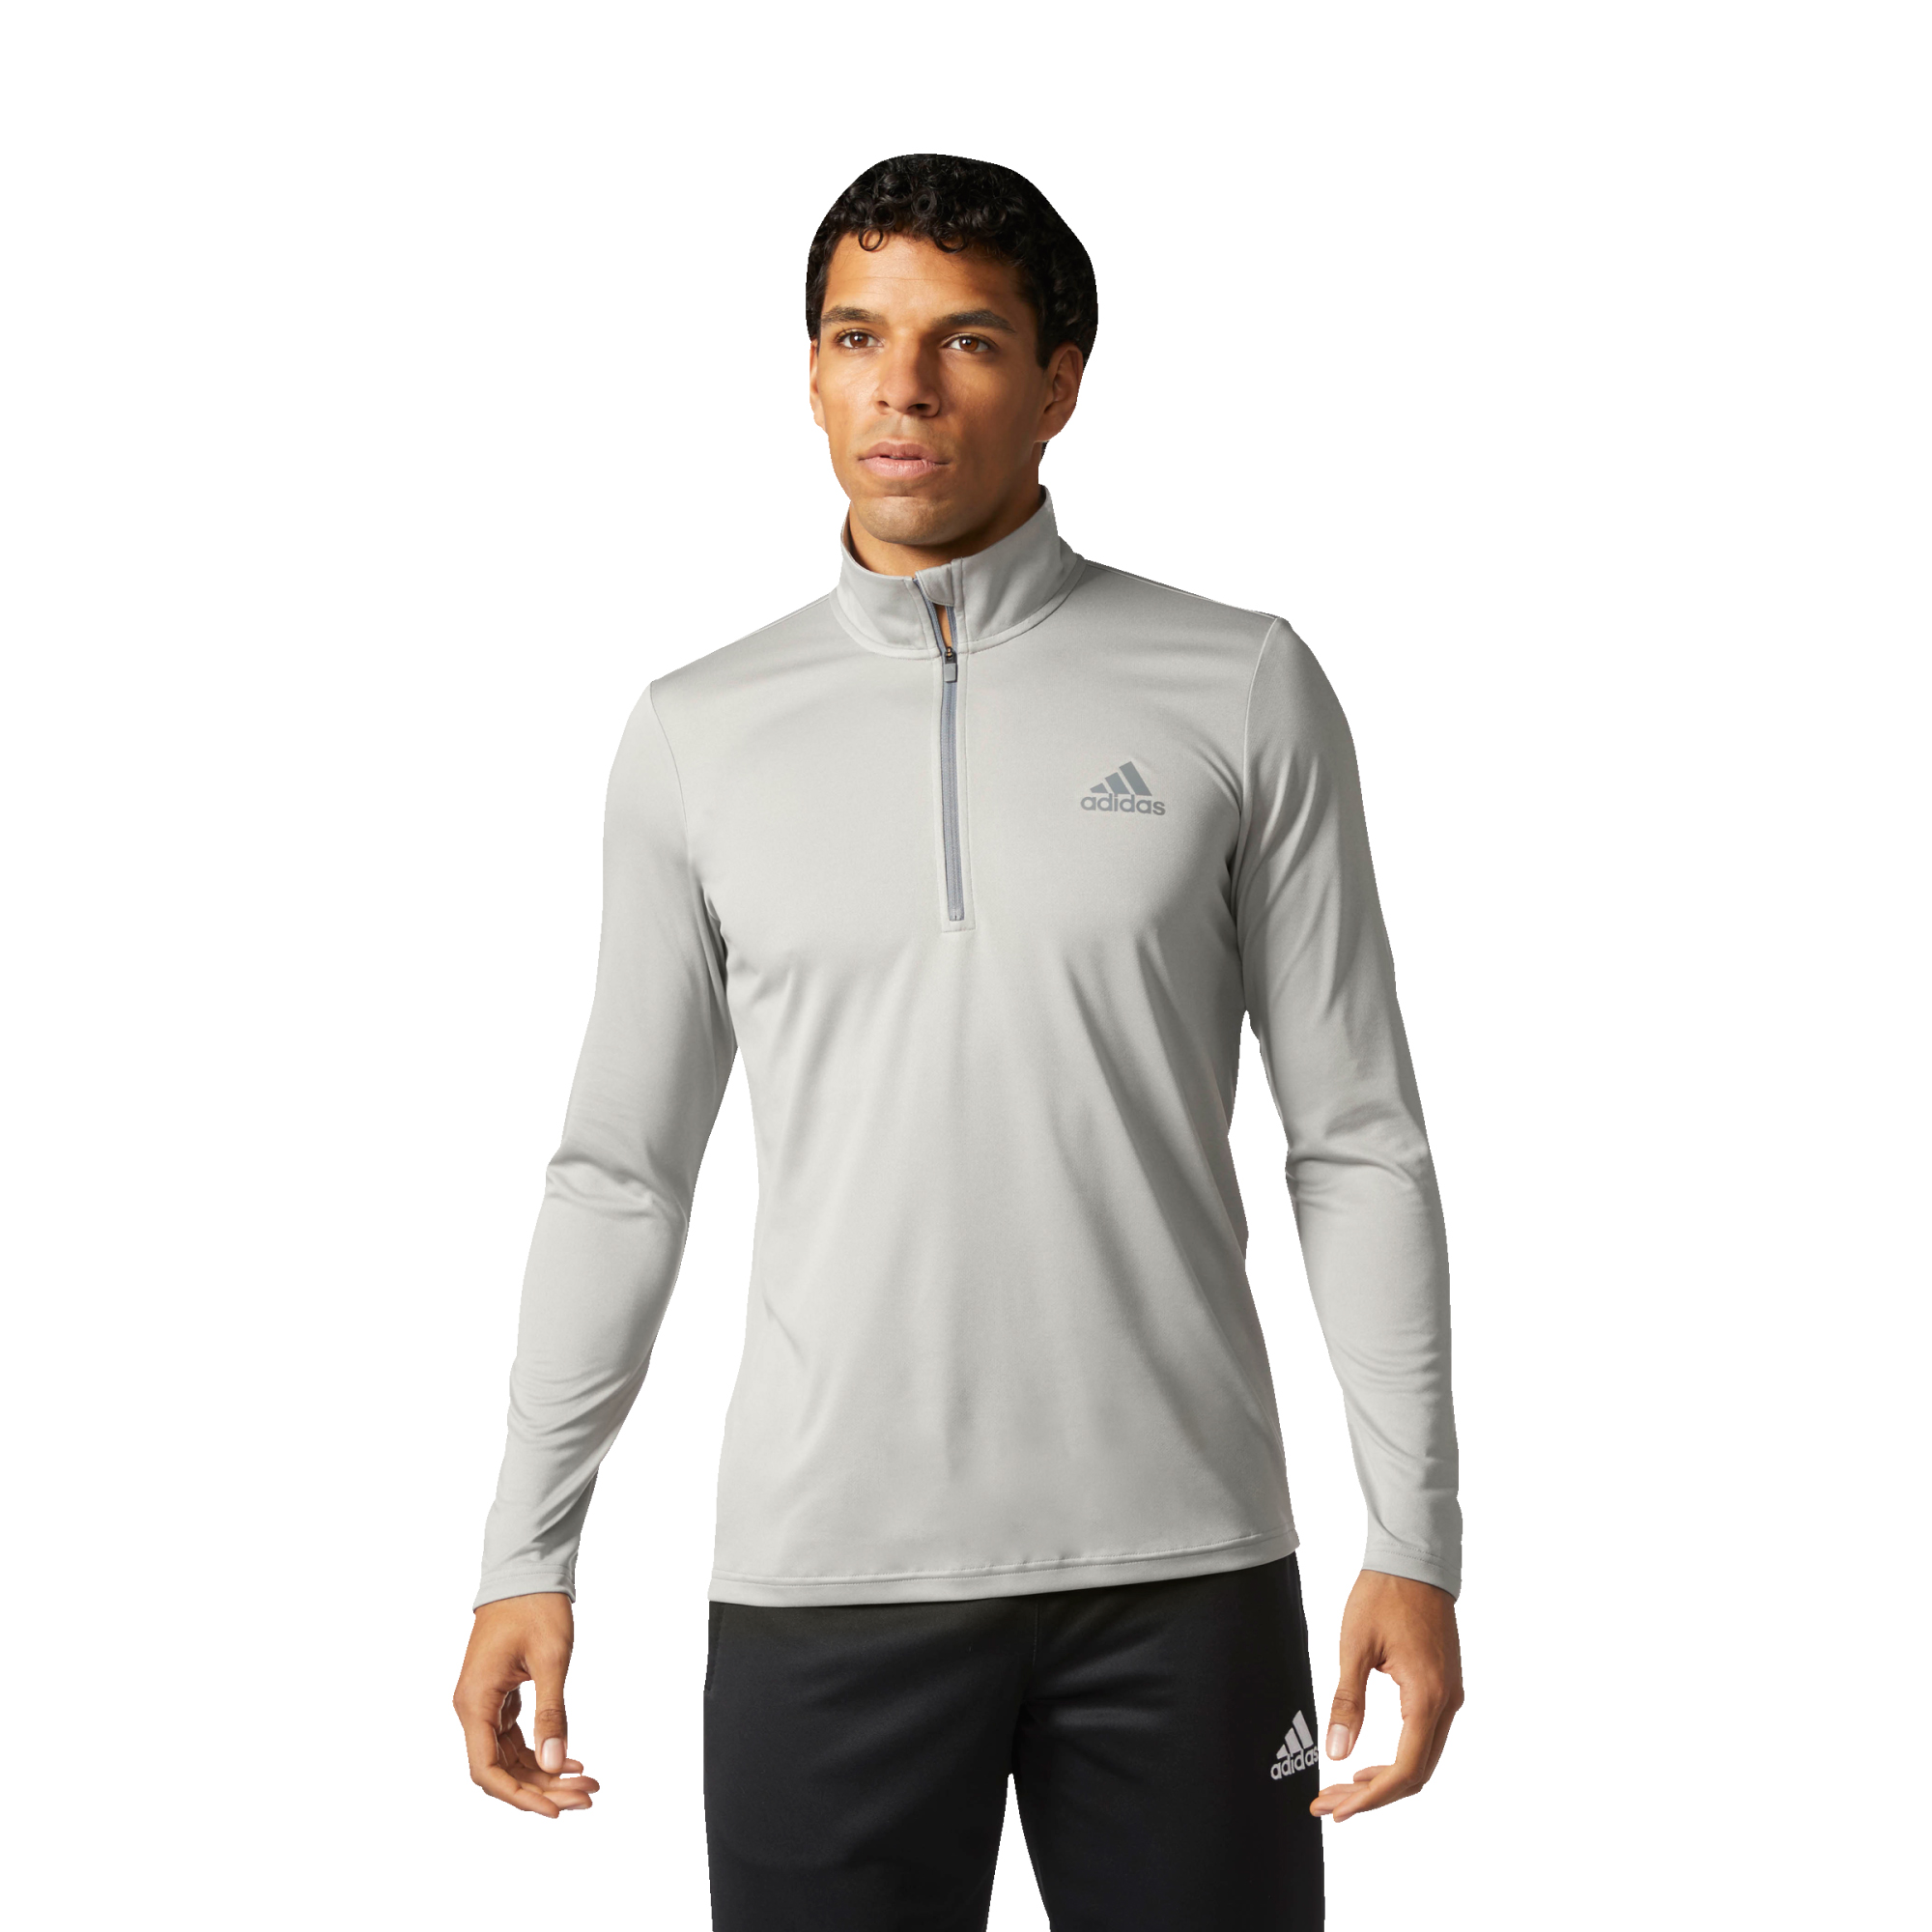 adidas Men's Essentials Tech 1/4 Zip Training Pullover - view number 2